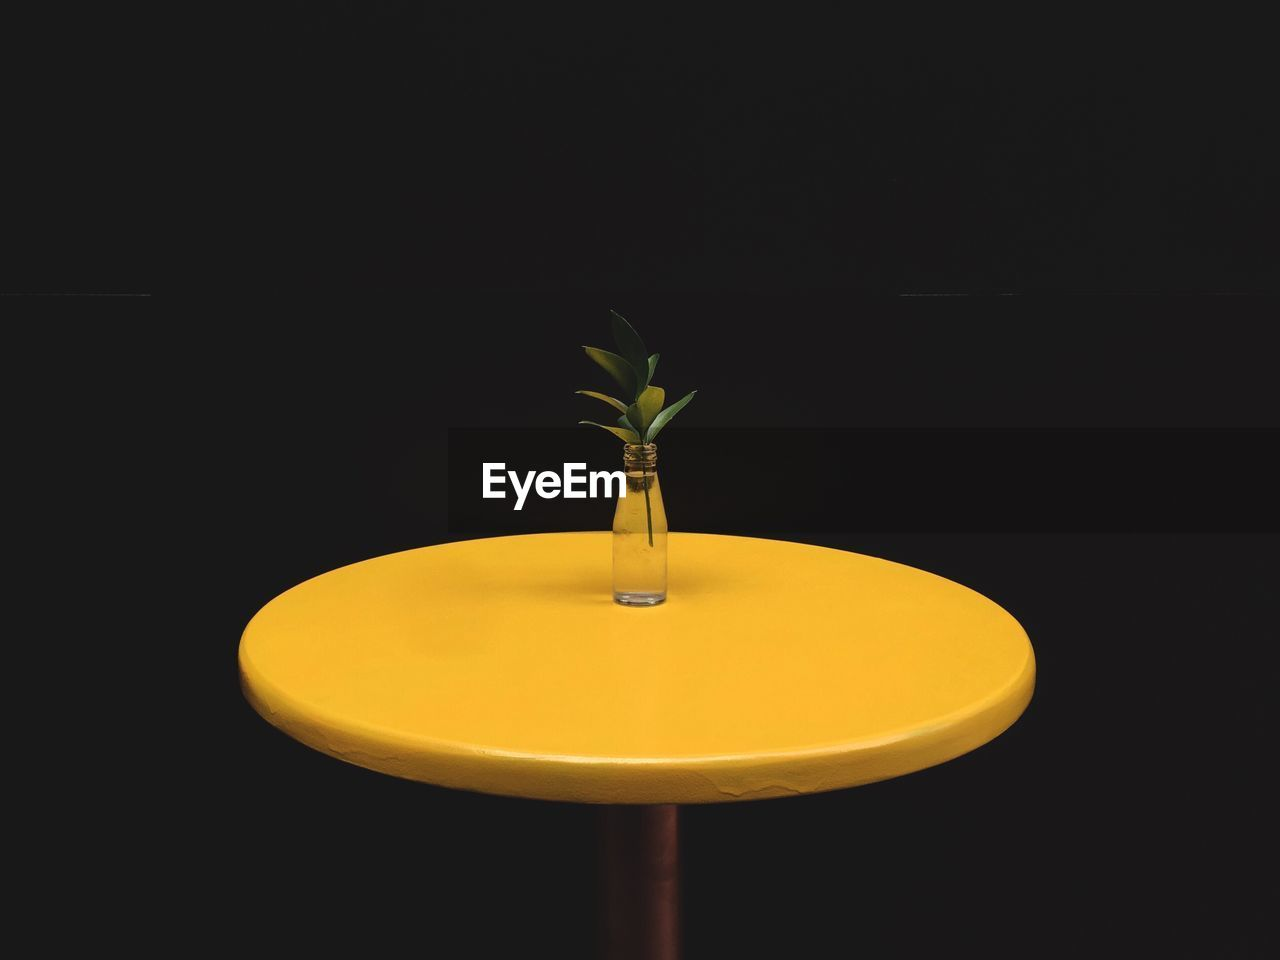 Plant in glass bottle on yellow table against black background